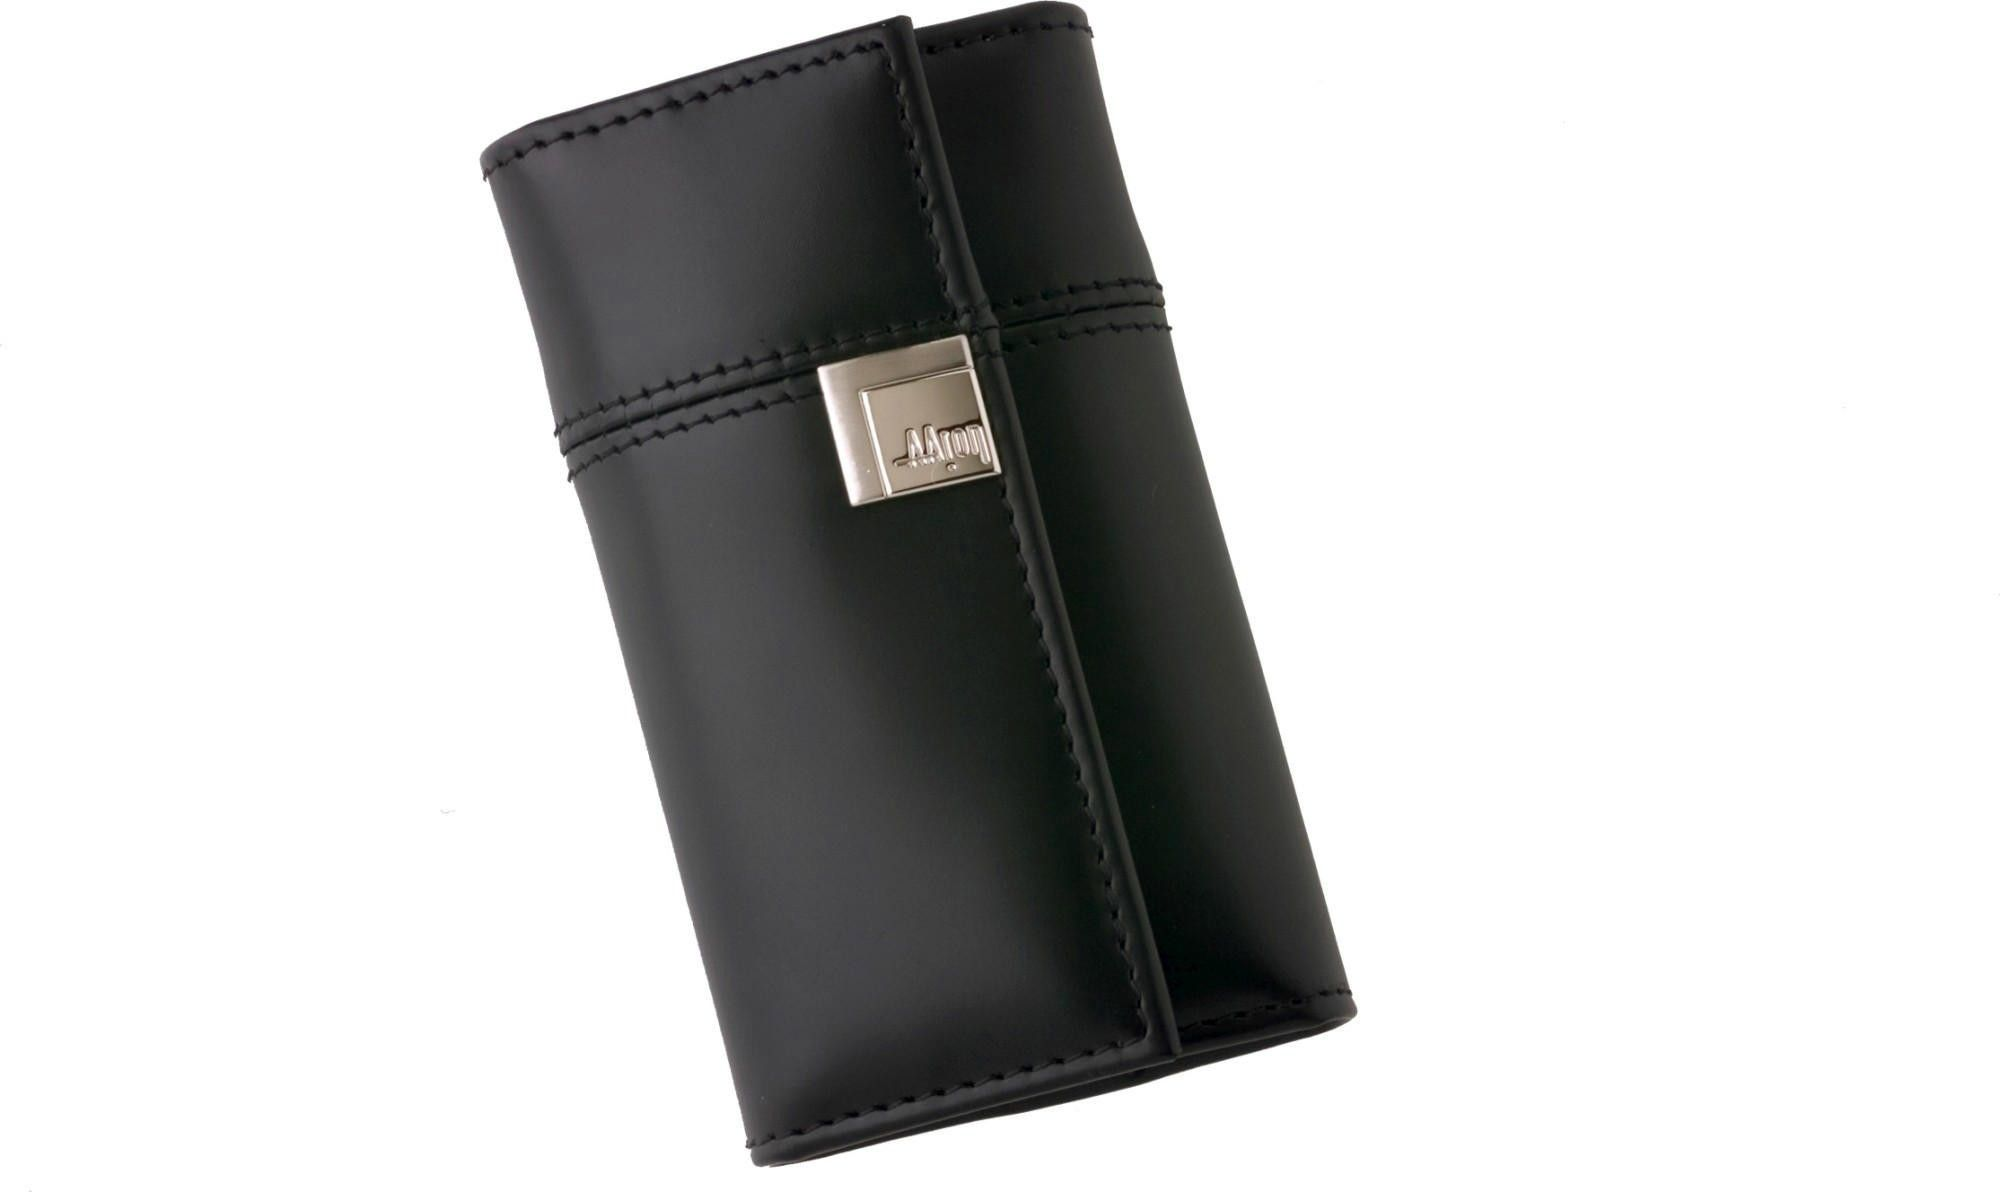 A case for all your keys, the Leather Key Case from Aaron Irvin is the perfect accessory for any and all keys.